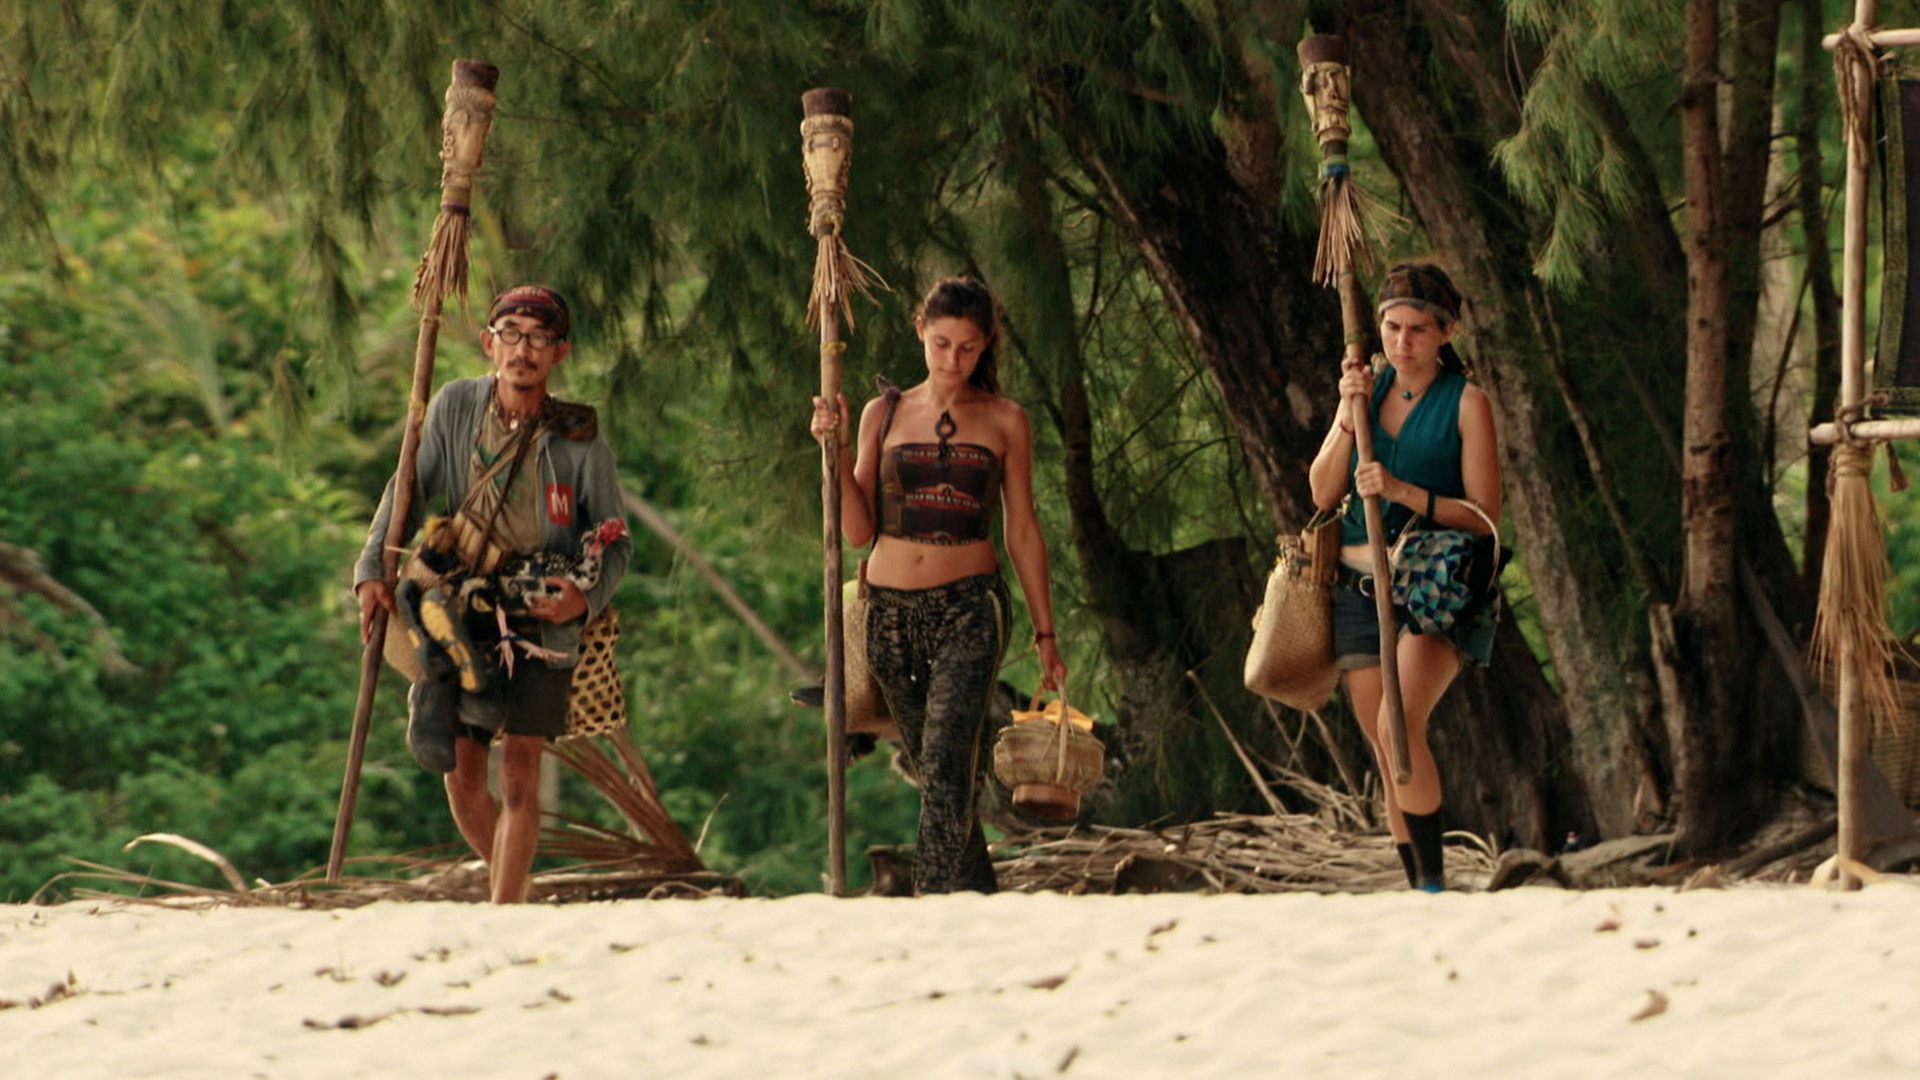 Survivor returns for a 33rd season with a 90-minute special on Wednesday, Sept. 21 at 8/7c.